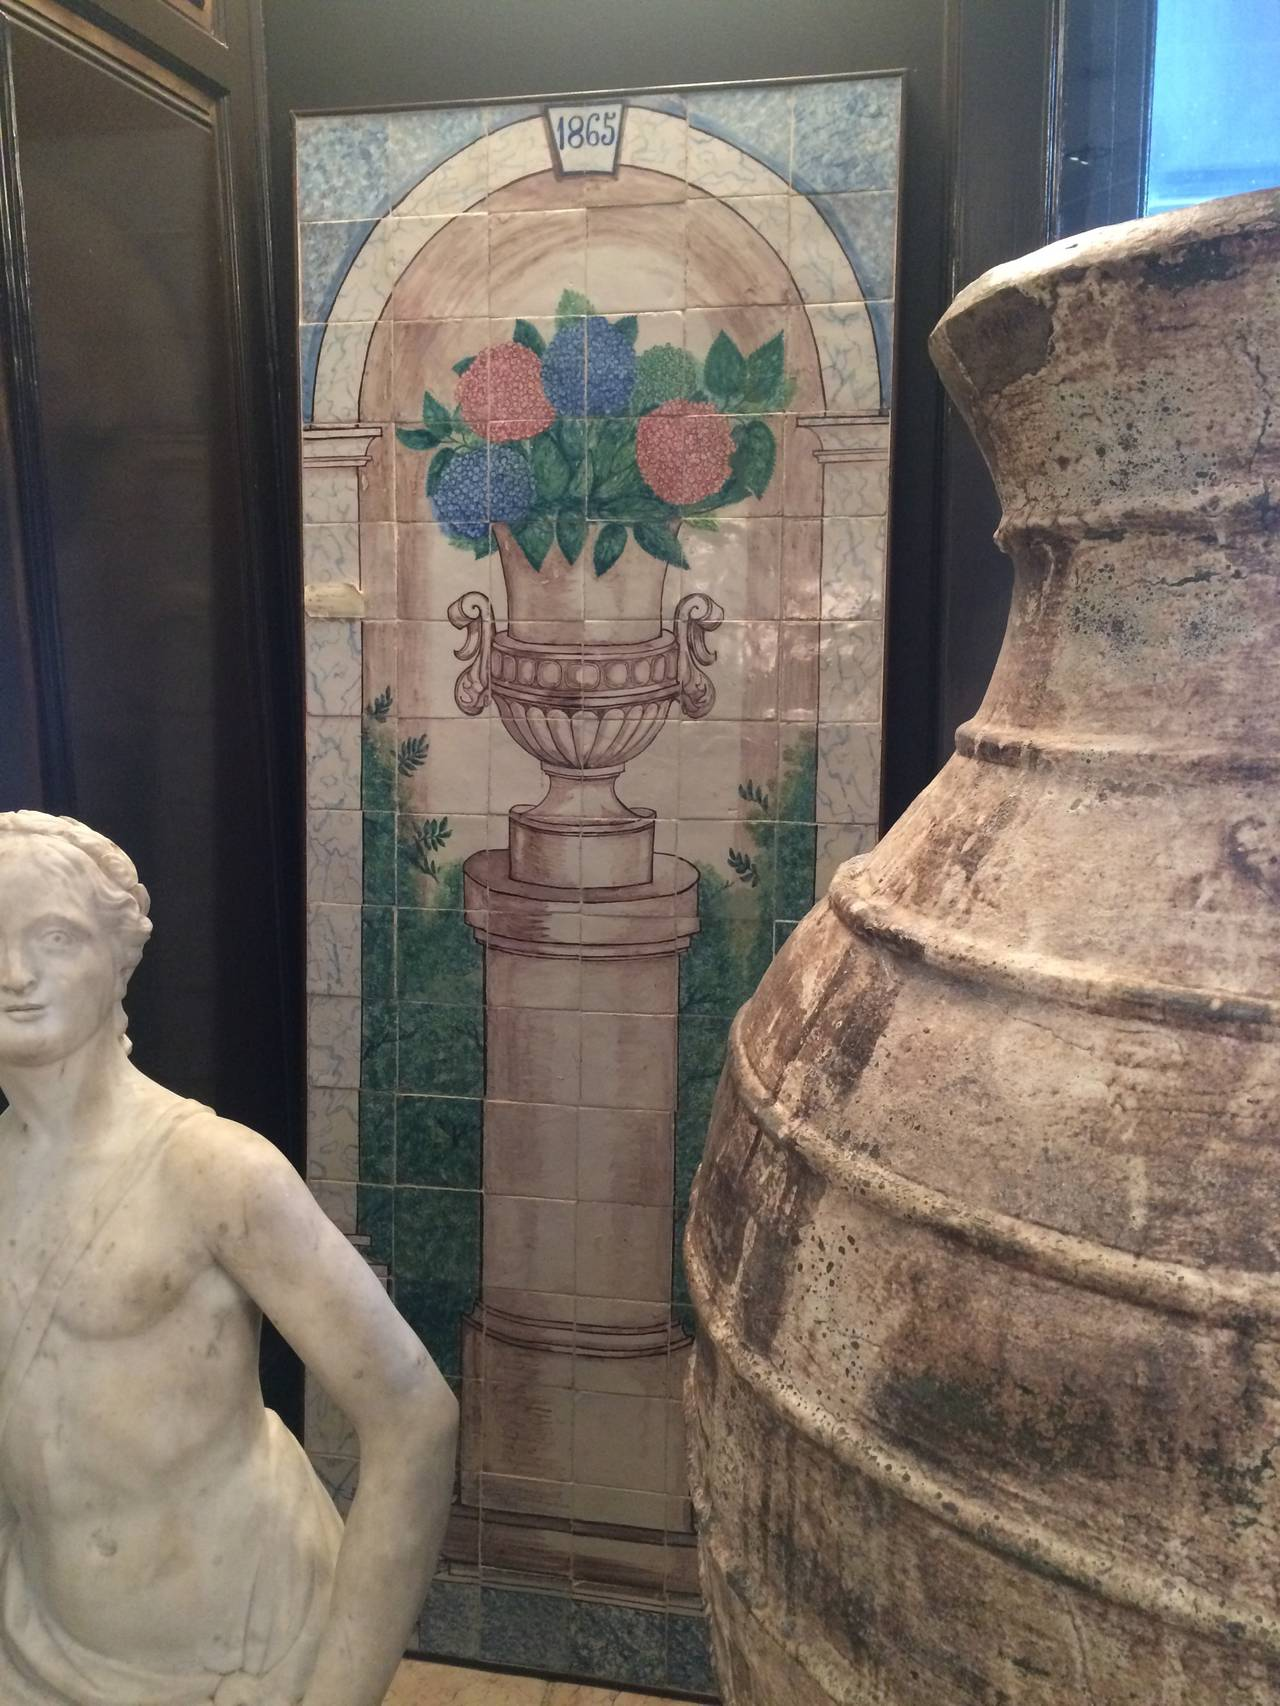 A 19th century polychrome mural representing a flower vase over a column in a marbled niche, dated 1865. The manganese urn holds blue and red hydrangeas.